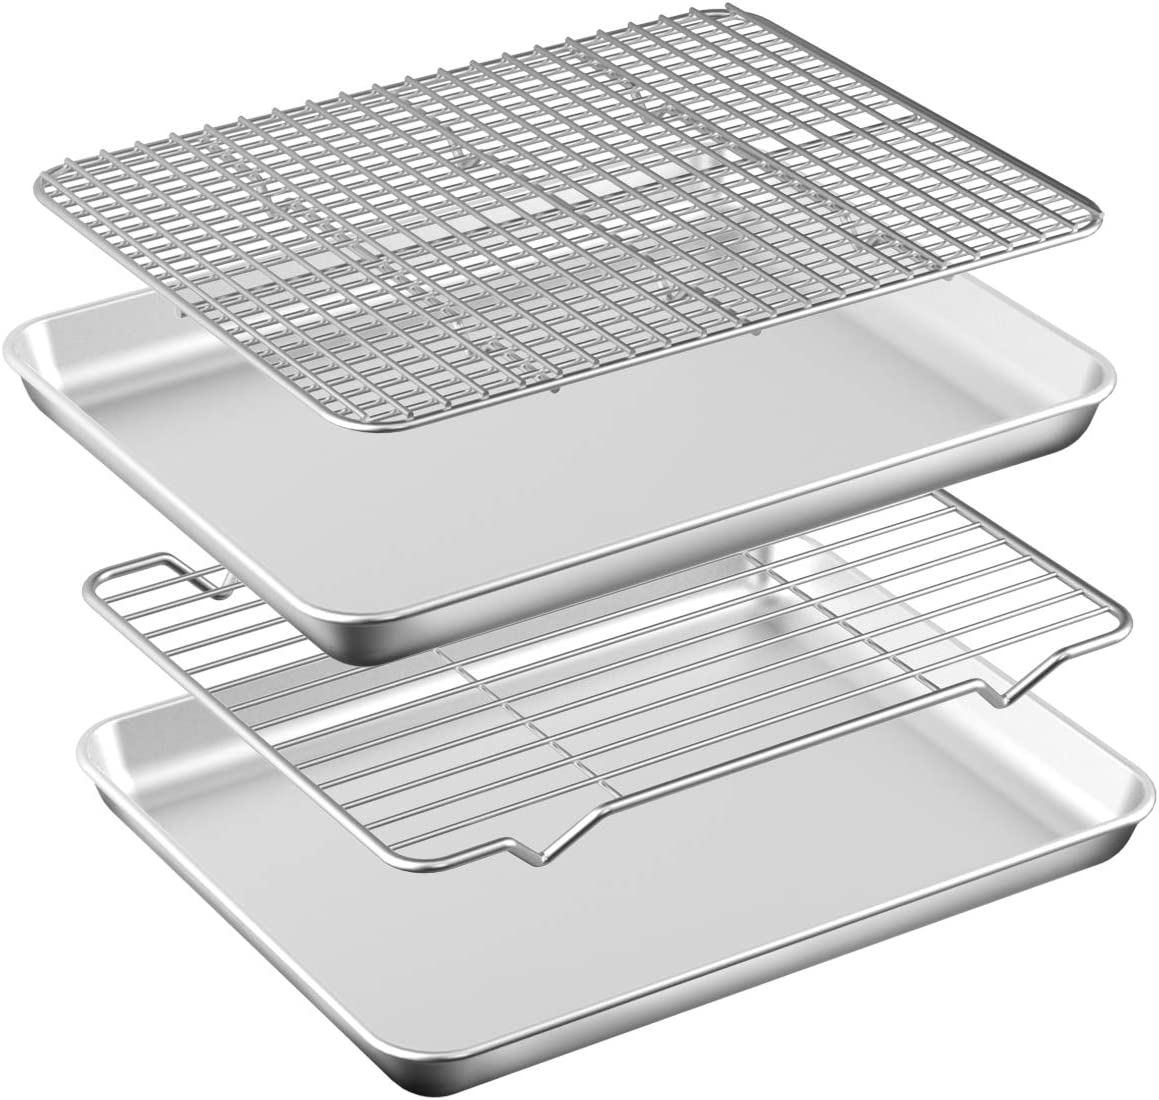 Baking Sheet with Rack Set [2 Pans + 2 Racks ] HKJ Chef Stainless Steel Cookie Sheet Baking Pan Tray with Cooling Rack, Size 9x7x1 Inch, Non Toxic & Heavy Duty & Easy Clean